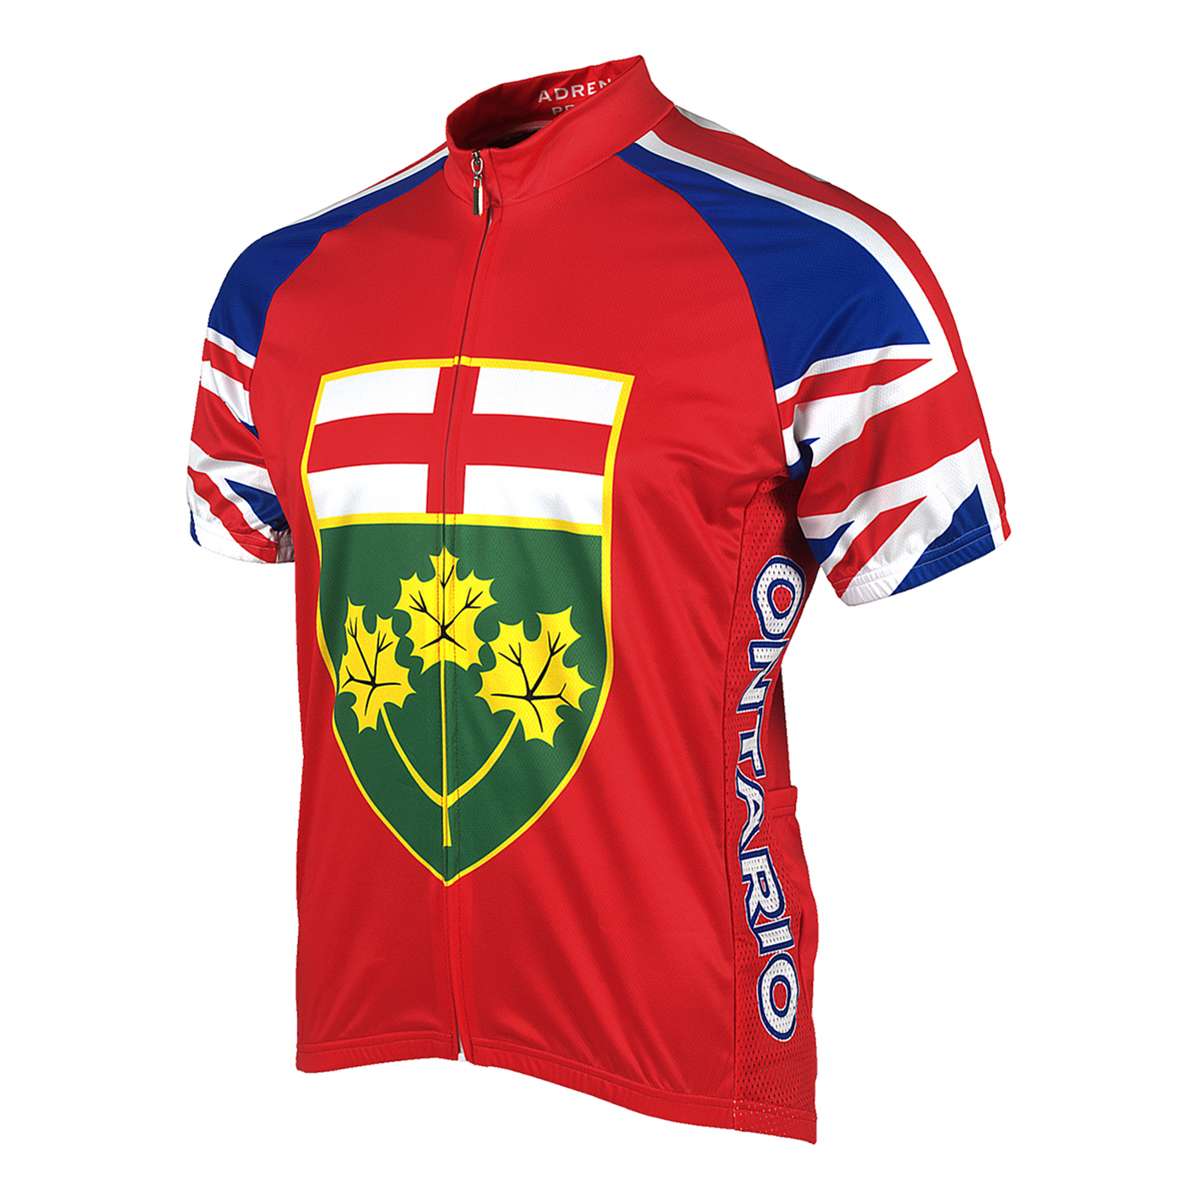 Adrenaline Promotions Ontario Cycling Jersey